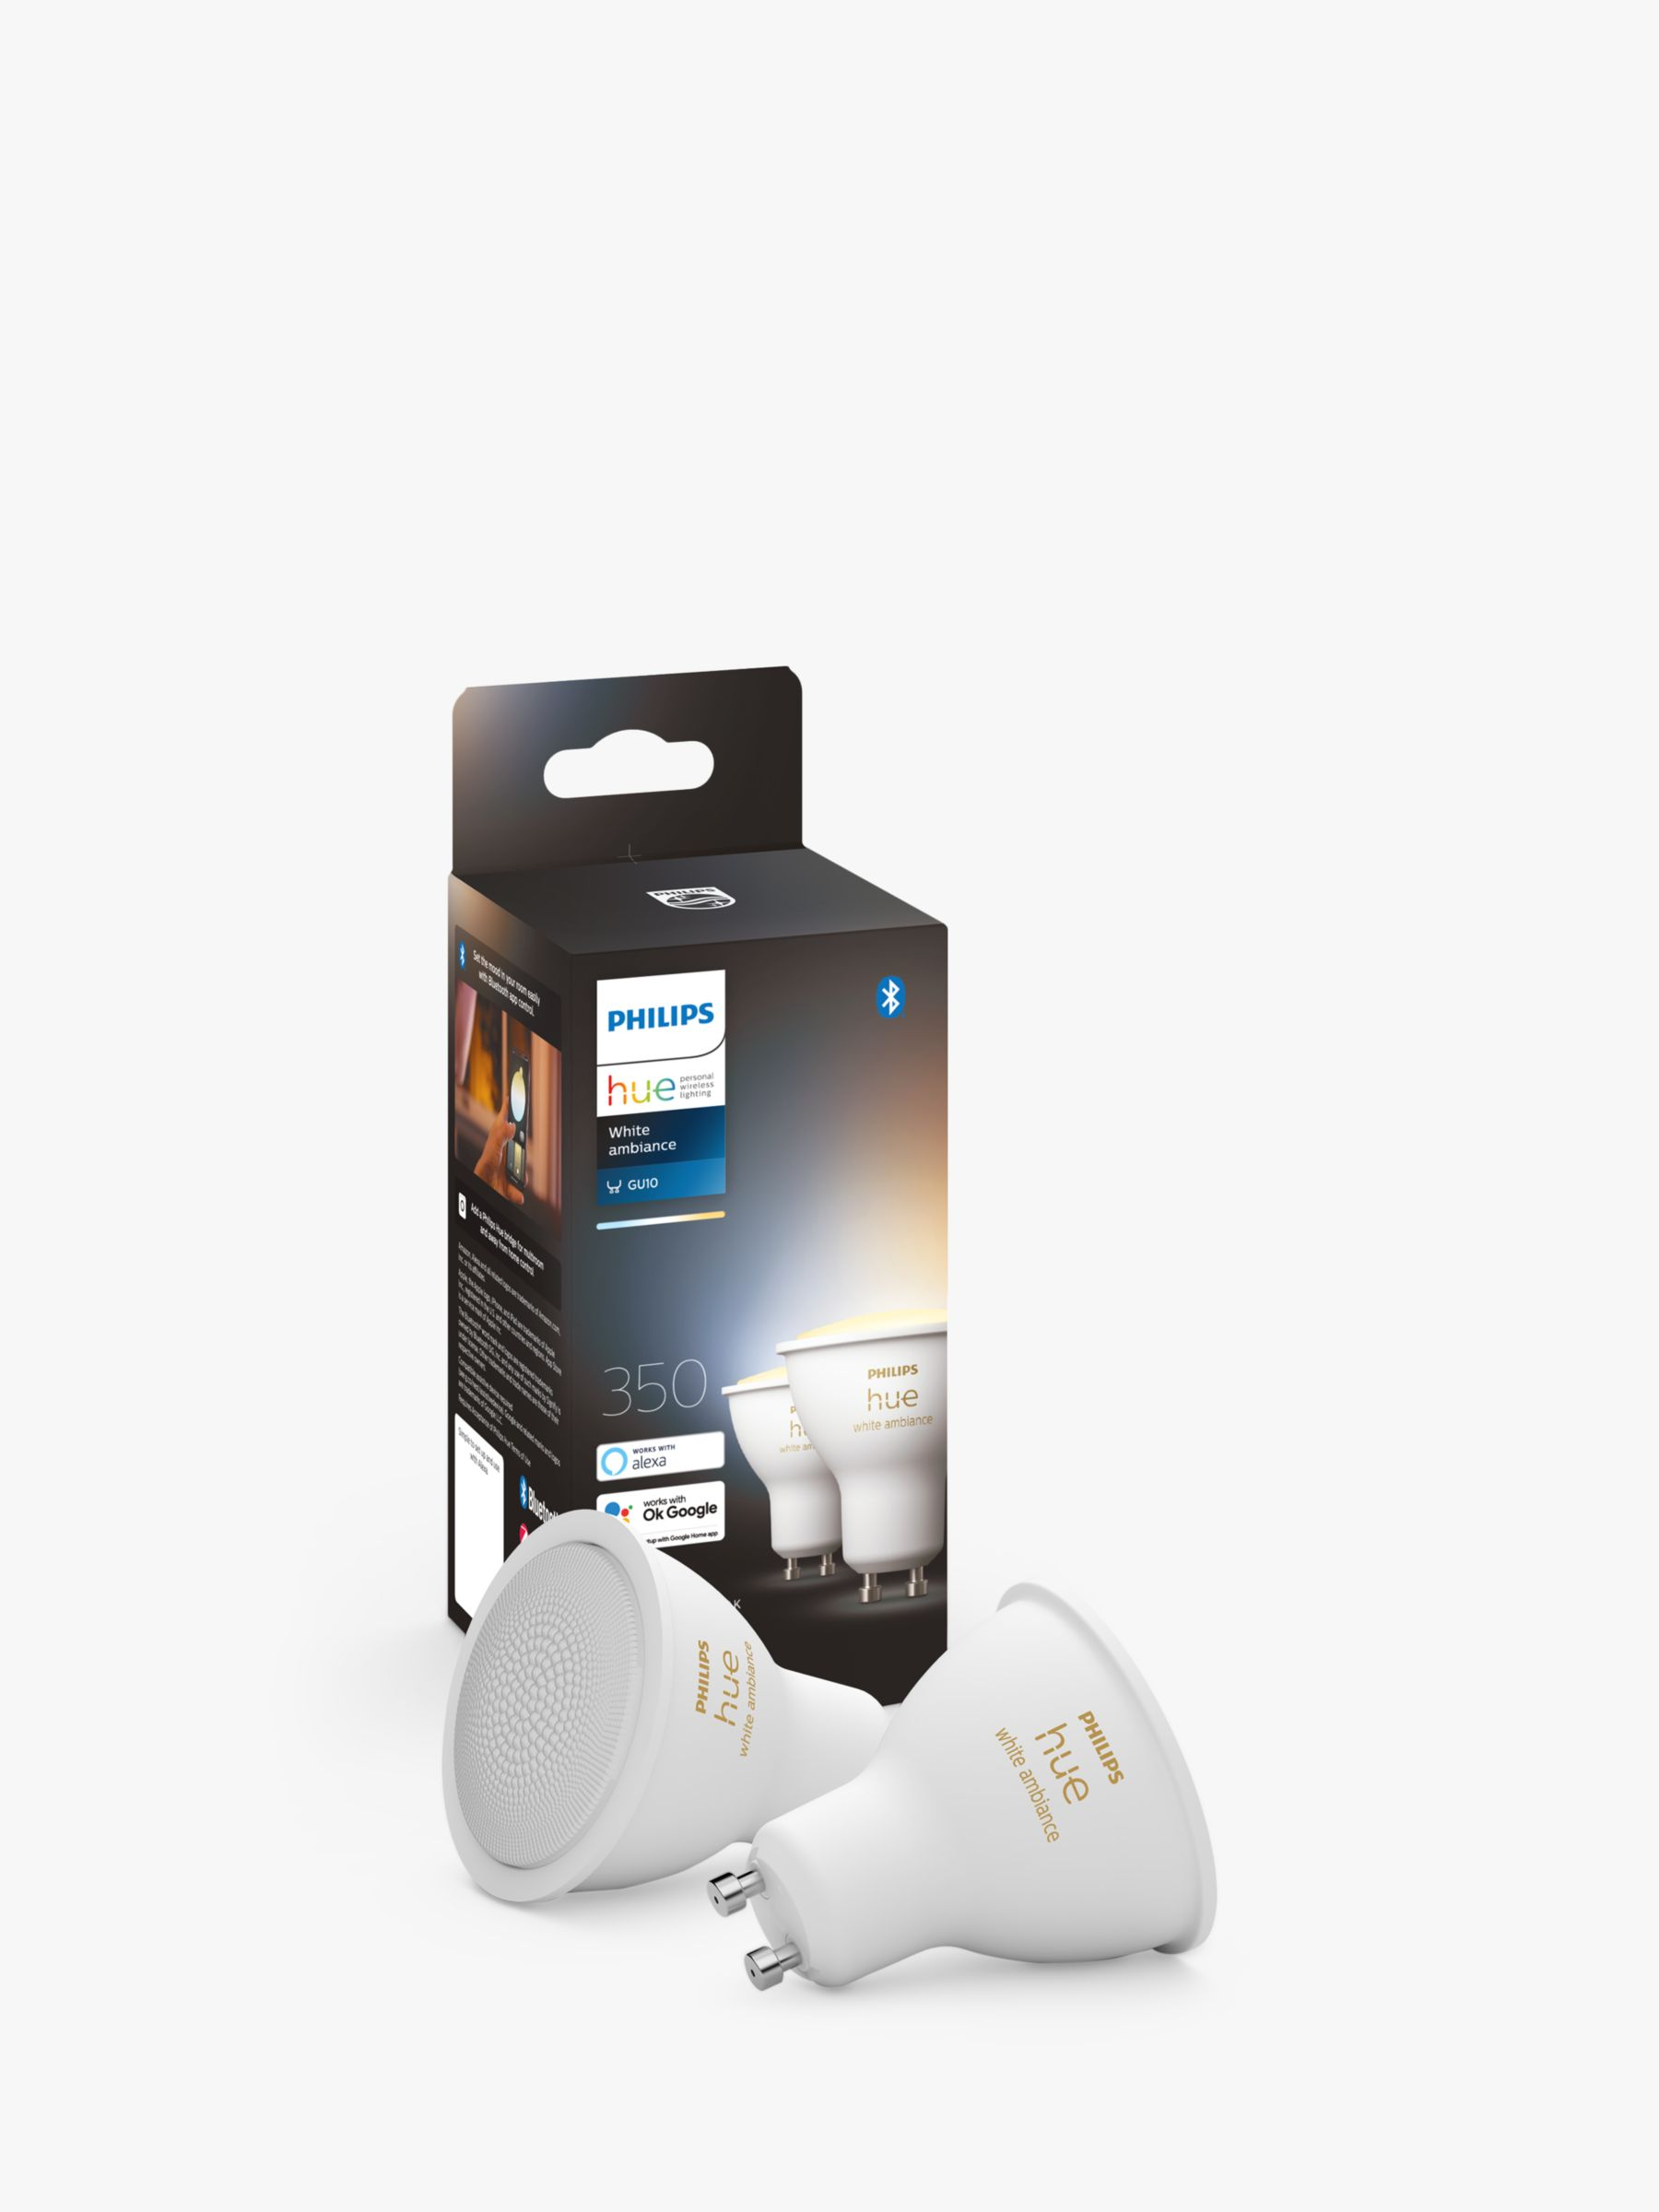 Philips Philips Hue White Ambiance Wireless Lighting LED Light Bulb with Bluetooth, 5W GU10 Bulb, Pack of 2